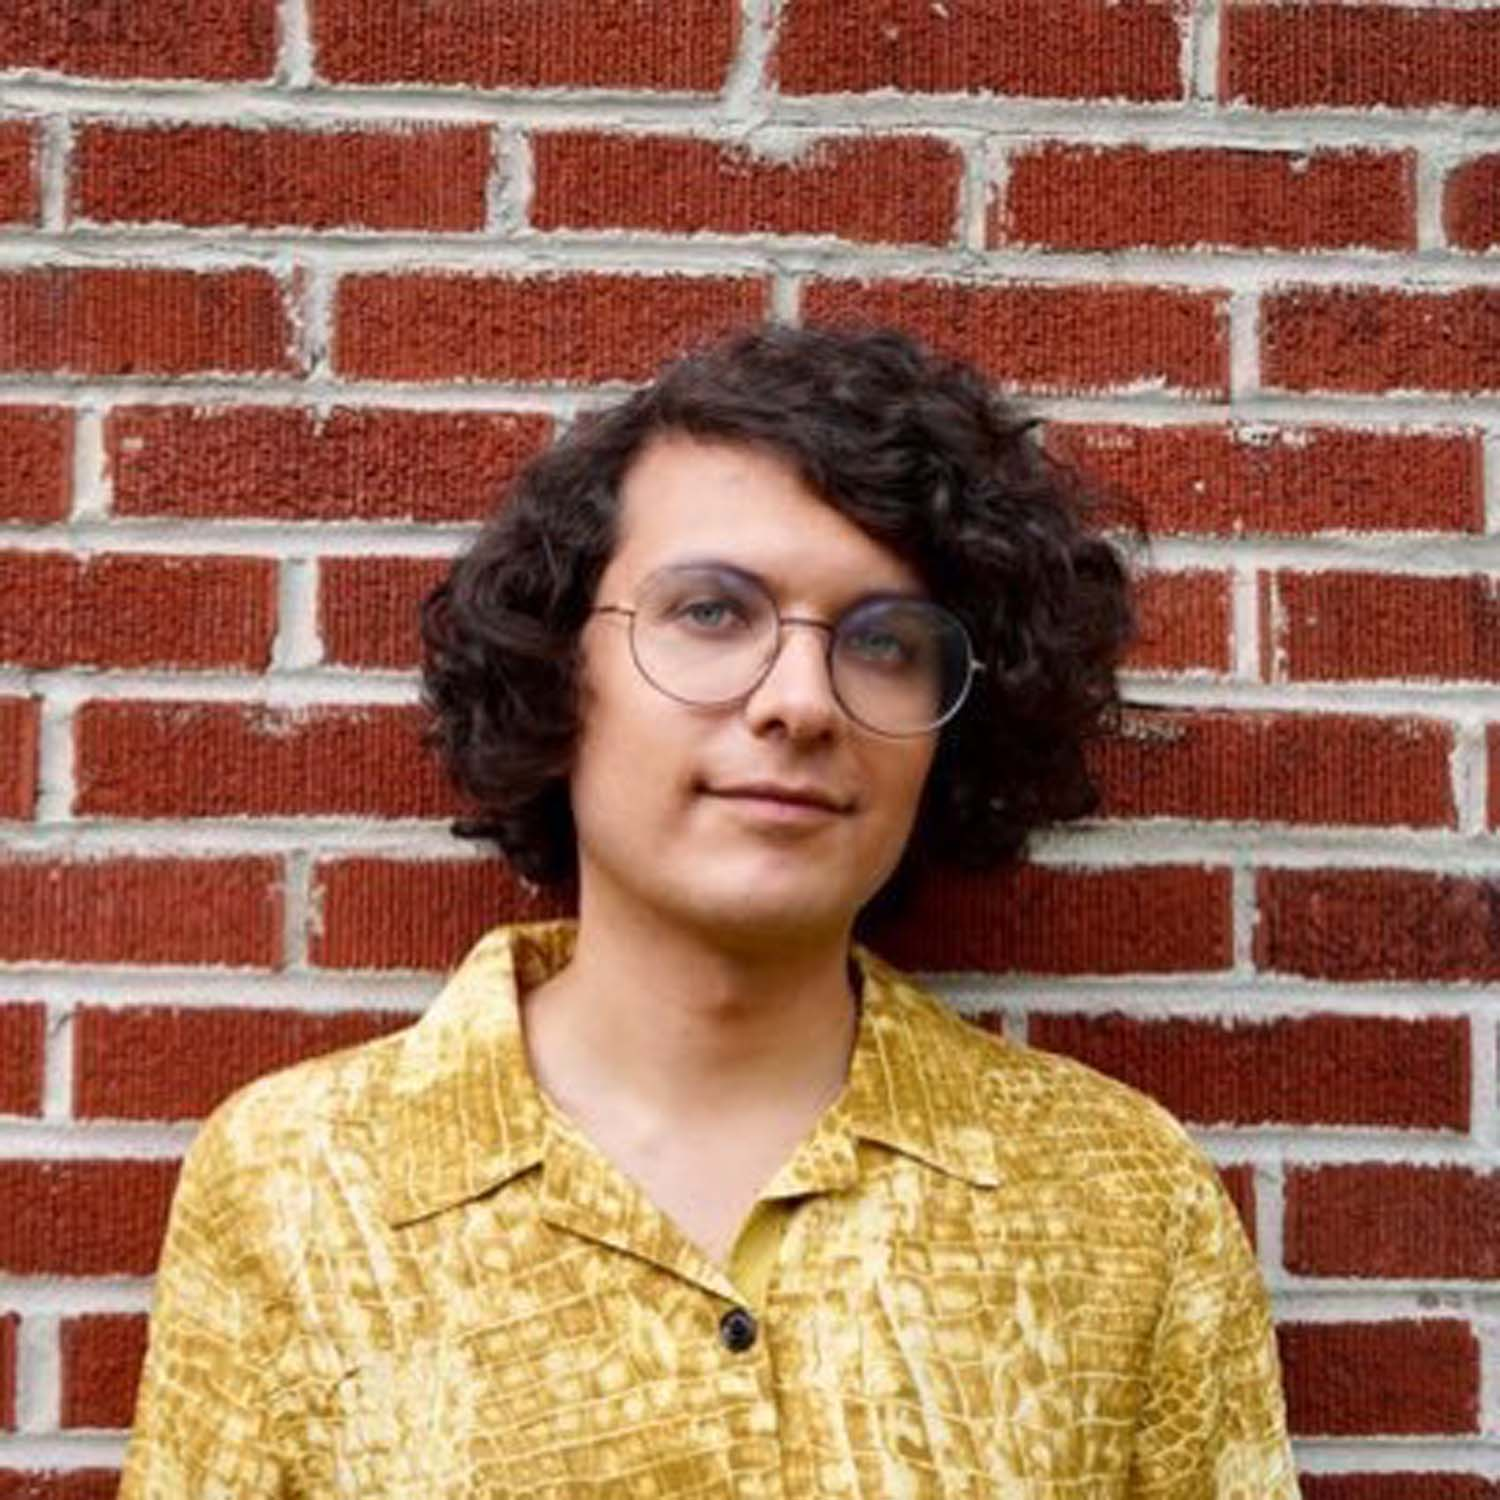 """Jules Gill-Peterson, an assistant professor of English and gender, sexualtiy and women's studies at Pitt, is the author of """"Histories of the Transgender Child."""""""